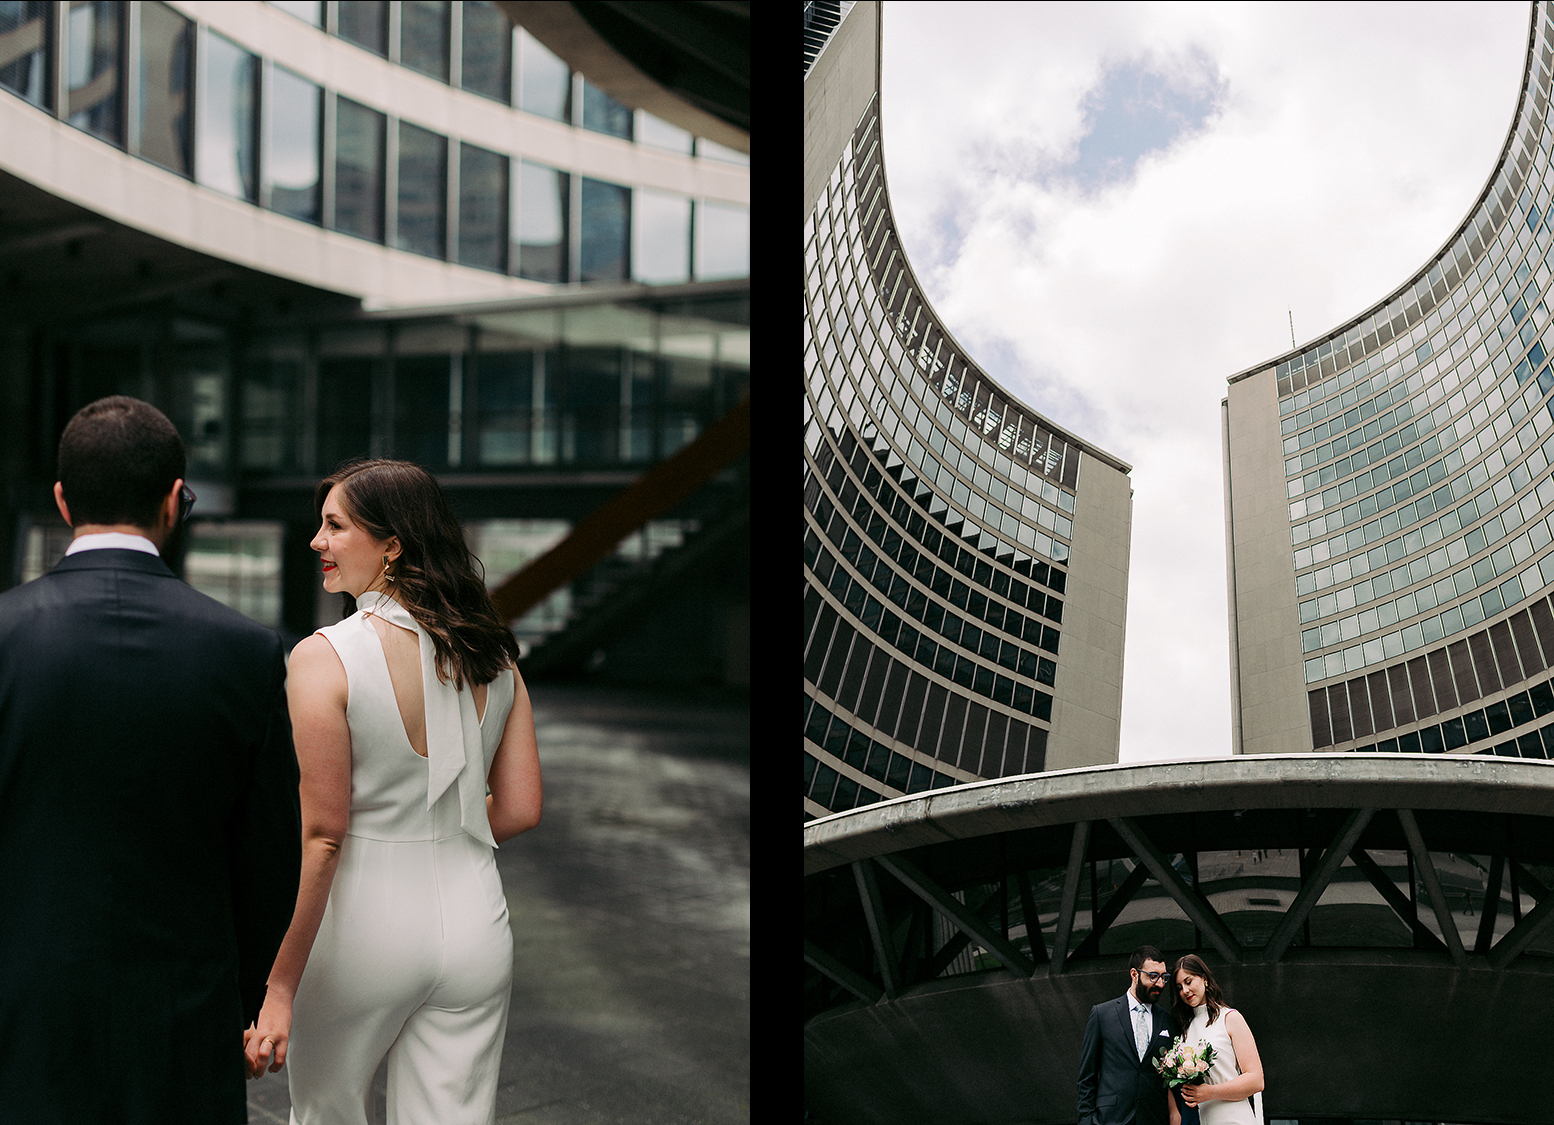 8-Intimate-Small-Toronto-City-Hall-Wedding-Osgoode-Hall-Candid-Documentary-Toronto-Wedding-Photographer-10-spread.jpg